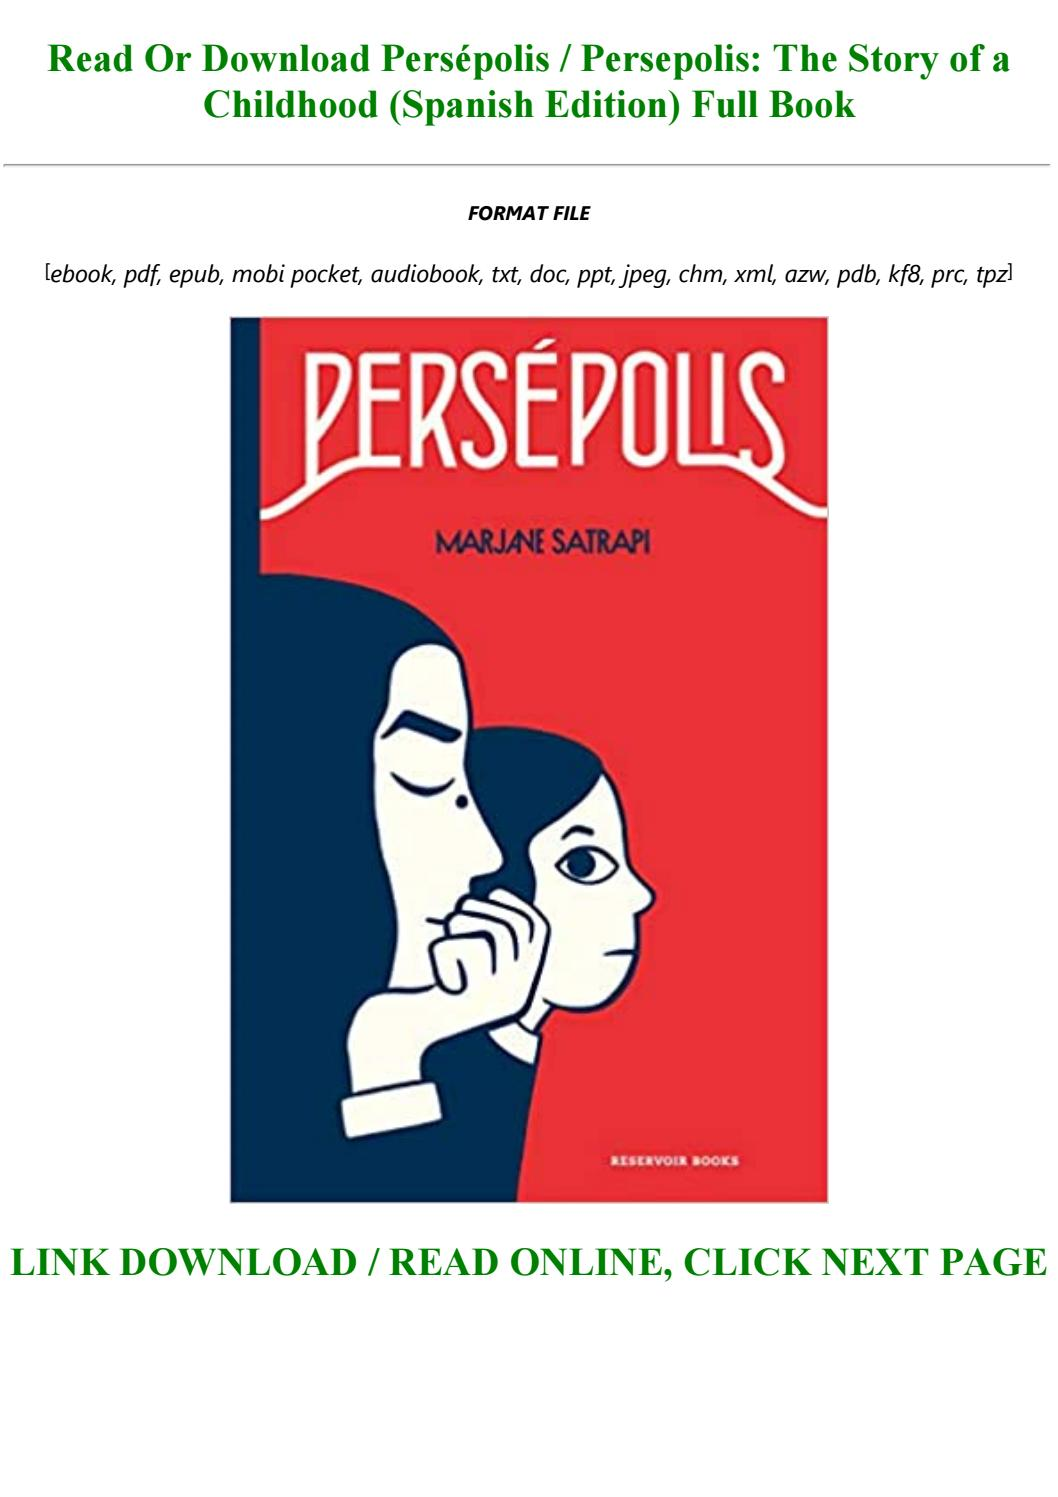 E Book Download Persa C Polis Persepolis The Story Of A Childhood Spanish Edition Full Online By Princess4545 Issuu